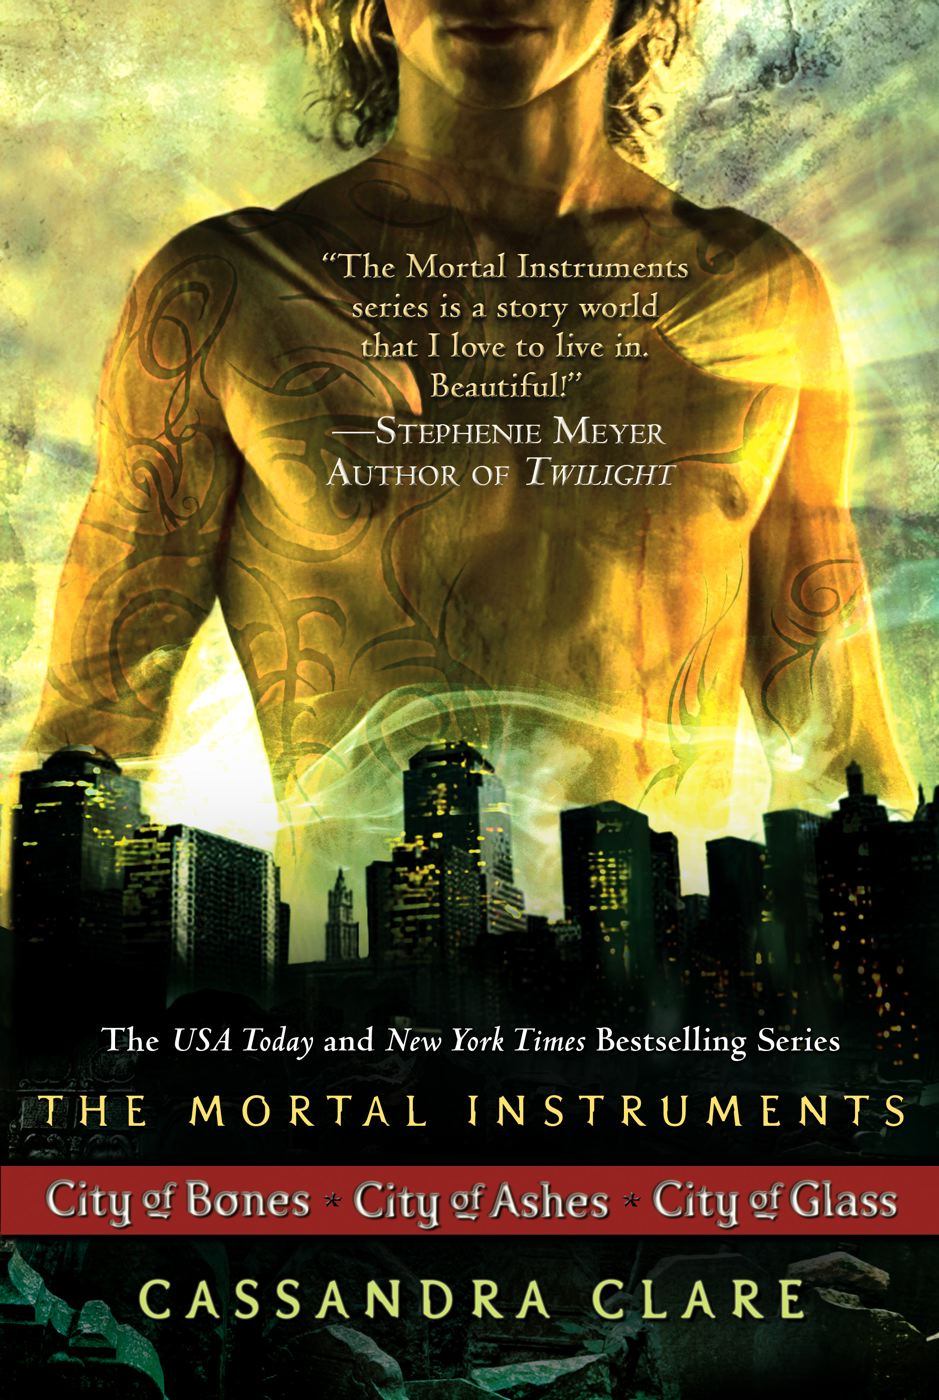 Cassandra Clare: The Mortal Instrument Series By: Cassandra Clare